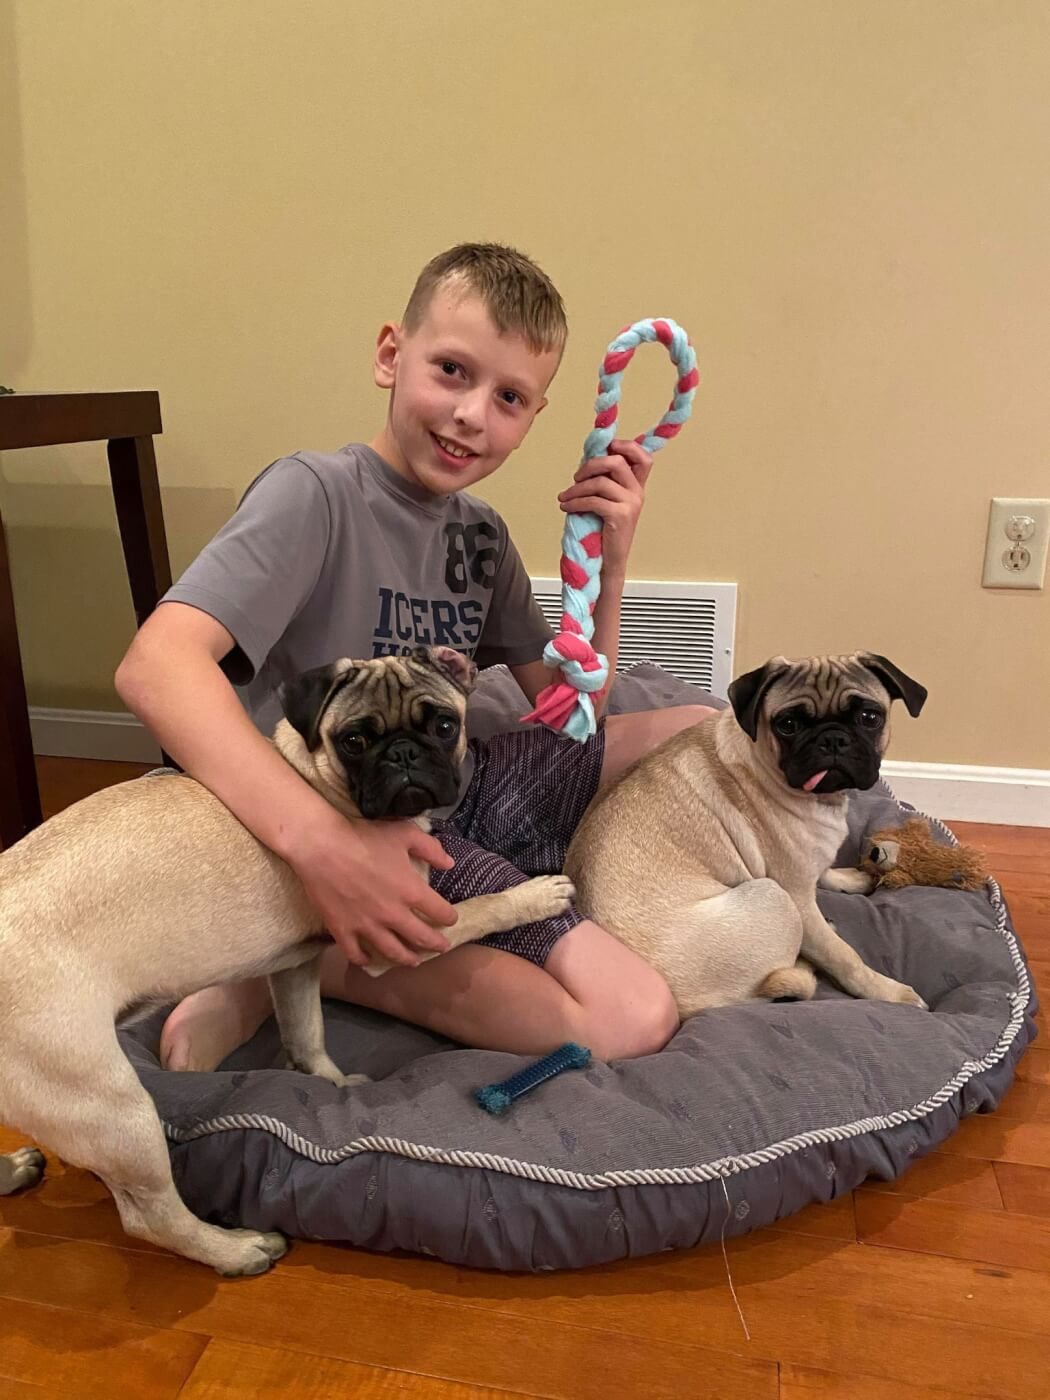 Ryan and his two dogs playing with a pup tug